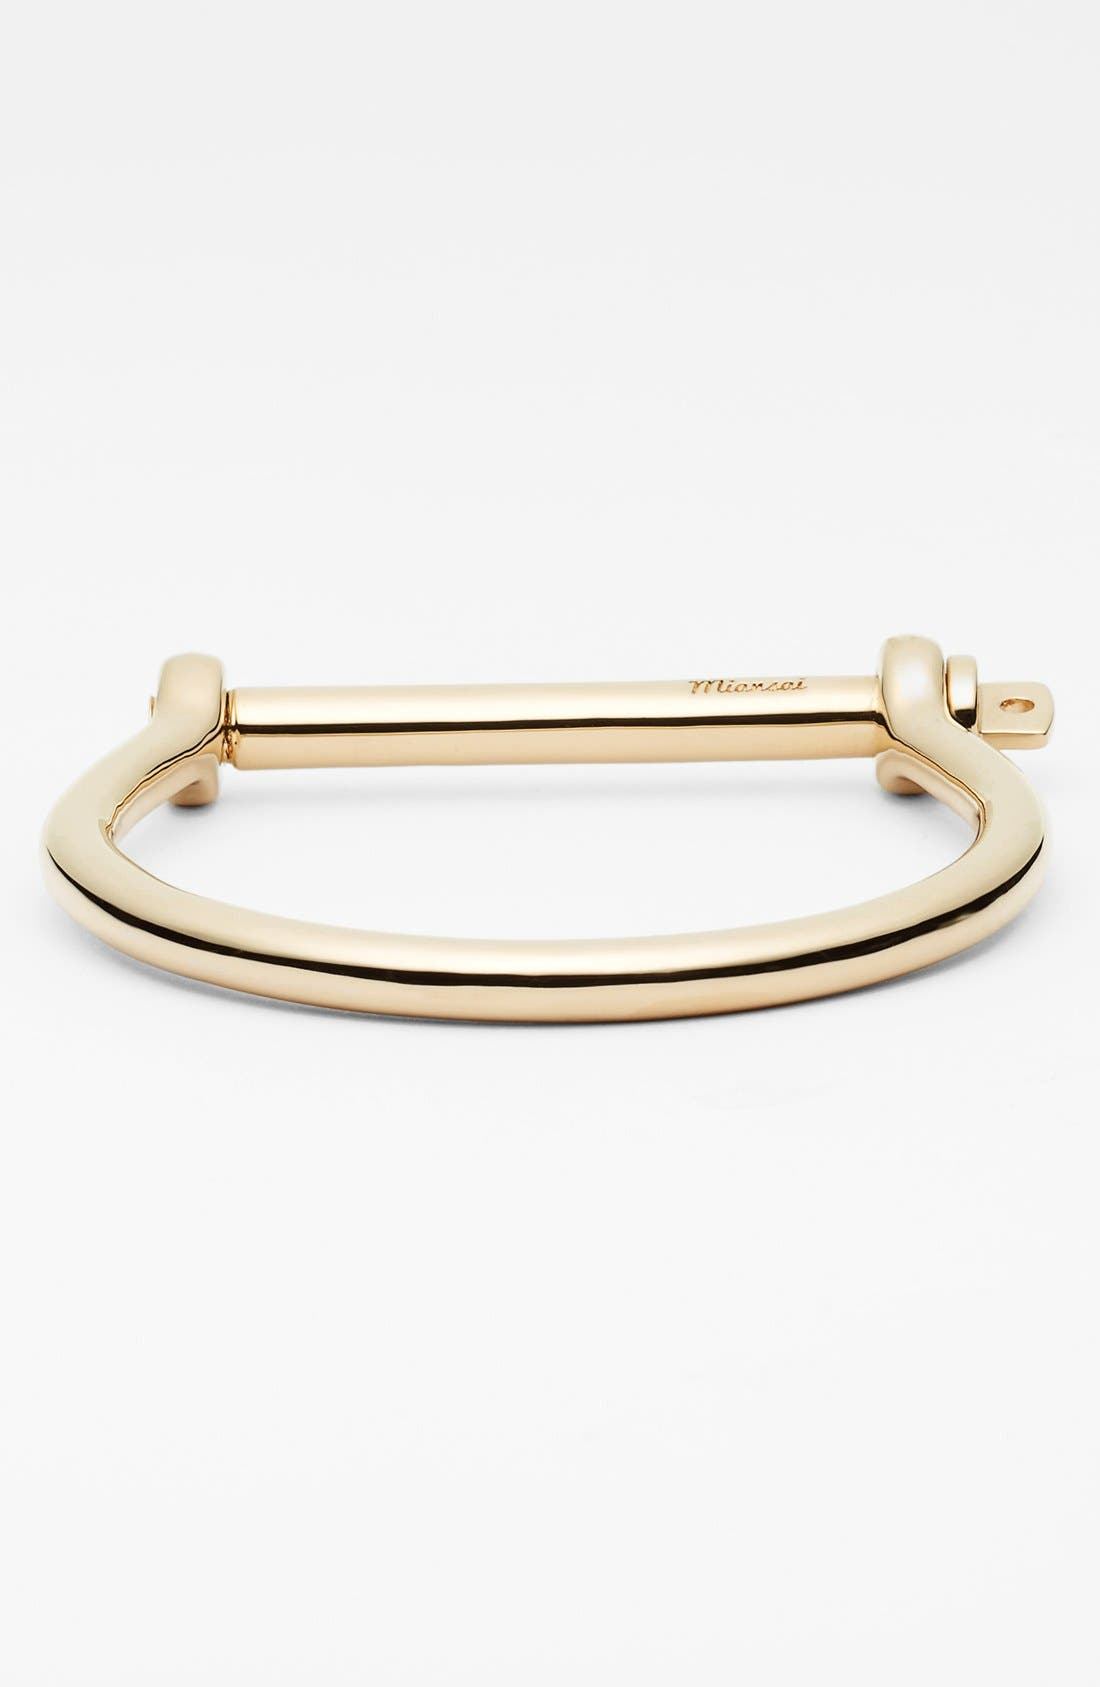 Main Image - Miansai Gold Plated Screw Cuff Bracelet